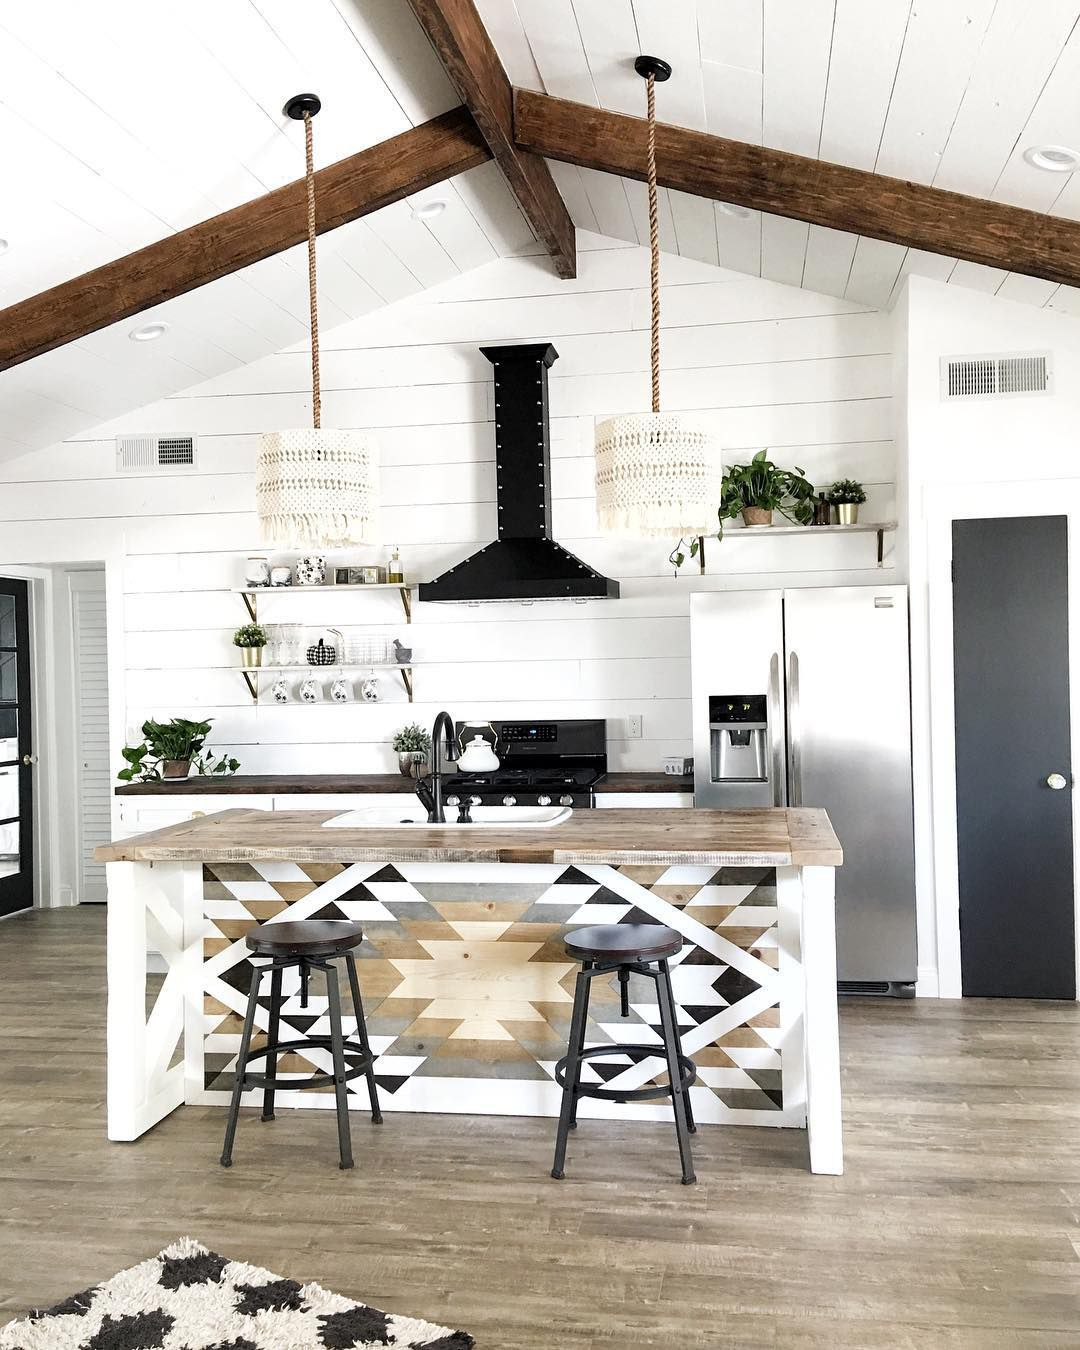 Kitchen Room Interior Design: How To Add Bohemian Elements Into Your Farmhouse Décor